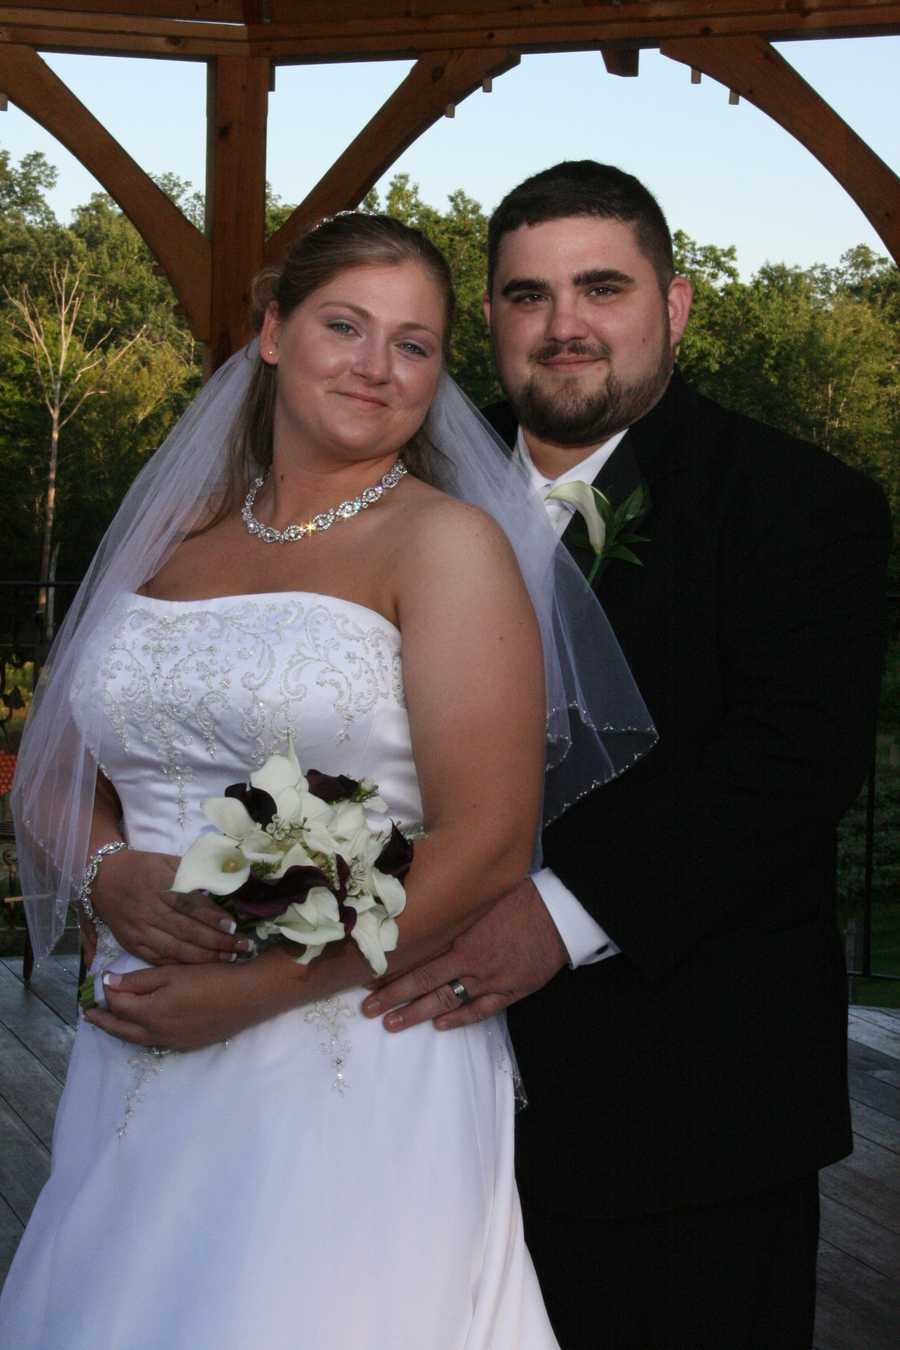 For a full story on what happened to this couples, click here:http://www.wmur.com/news/nh-news/AG-looks-for-owners-of-wedding-pictures/-/9857858/19636074/-/format/rsss_2.0/-/148ku1n/-/index.html